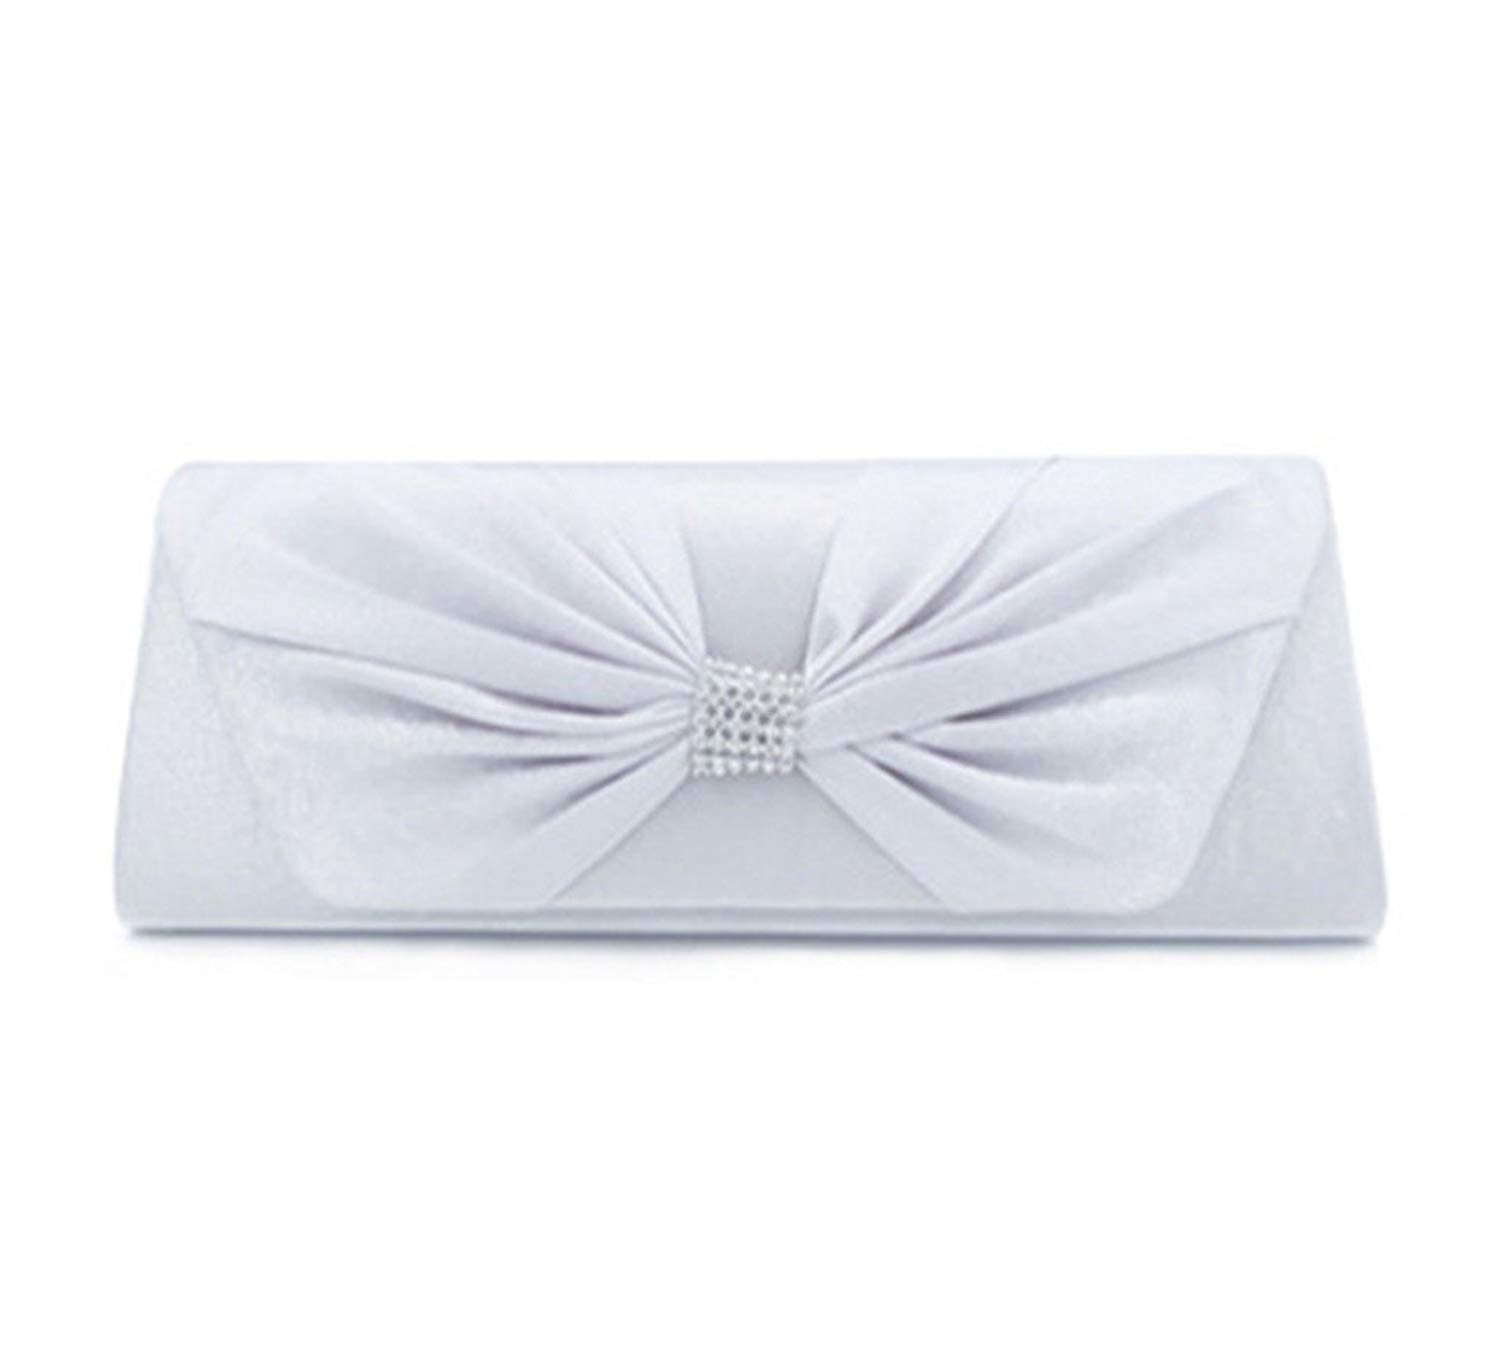 Envelope Evening Bag AfterSo Party Purse Coin Cellphone Bag Womens Girls Gifts Silver